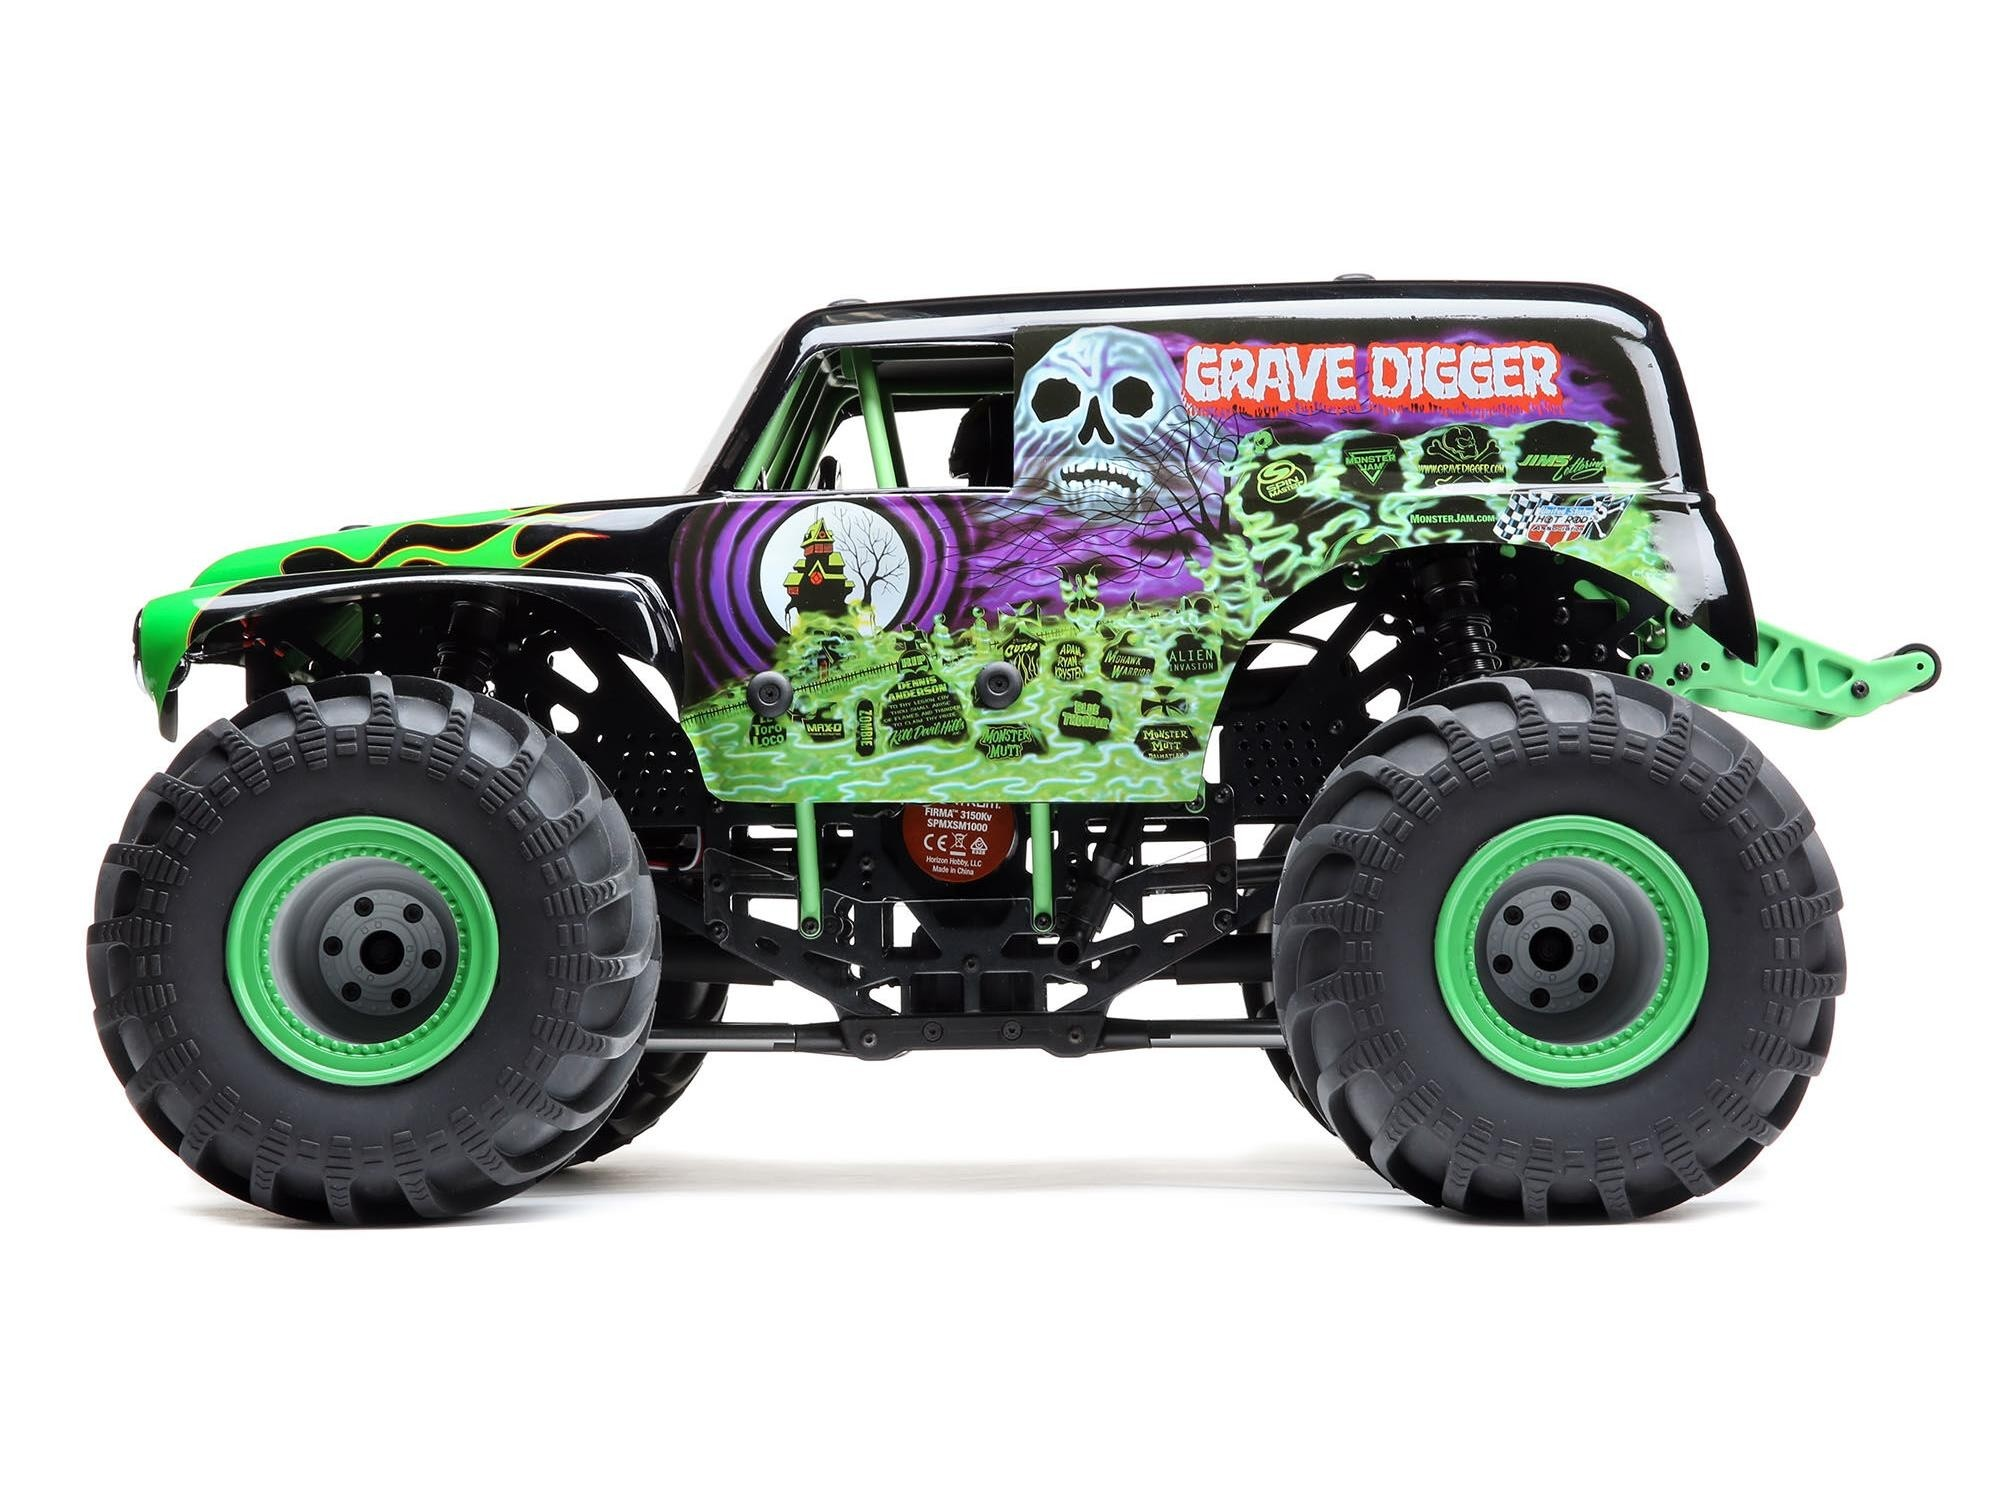 Losi LMT 4WD Solid Axle Monster Truck RTR Grave Digger ...